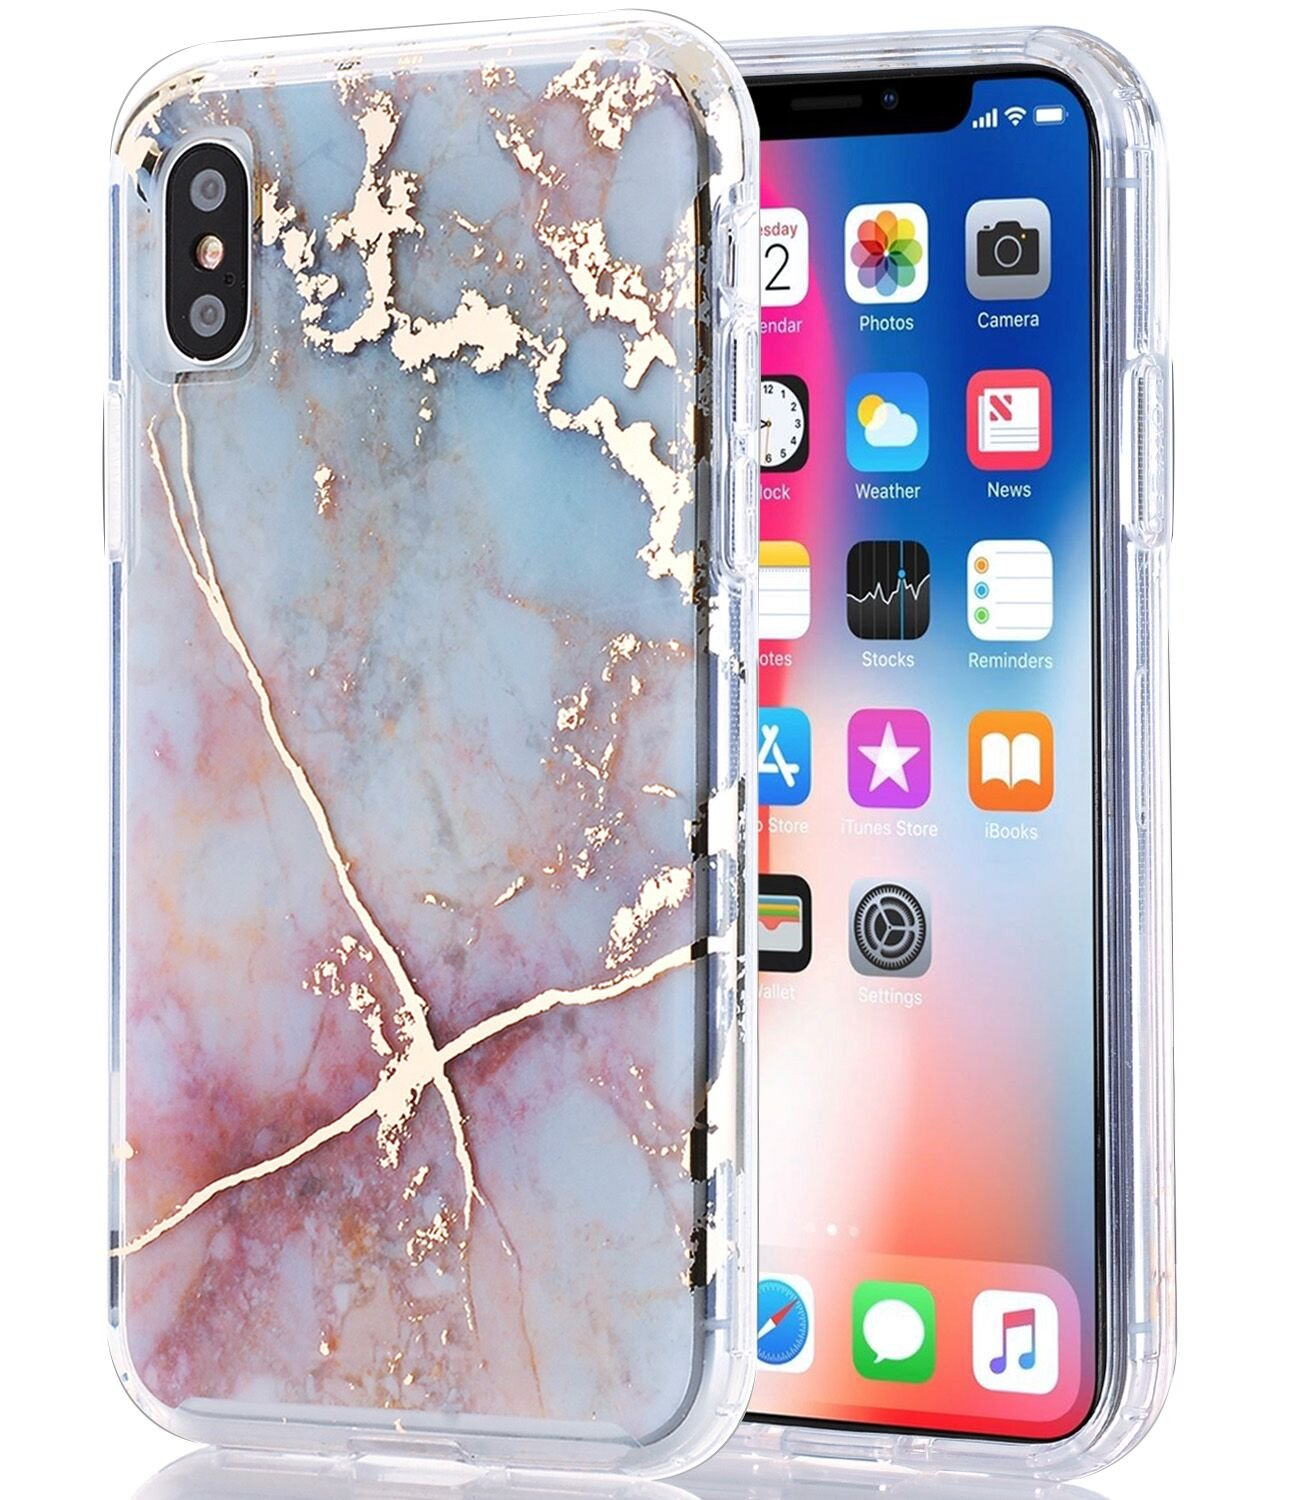 BAISRKE iPhone Xs Case, iPhone X Case Clear with Shiny Gold Marble [Fusion] Hard PC Back Soft TPU Bumper Raised Edge Drop Protection Cover for Apple iPhone X/iPhone XS 5.8''